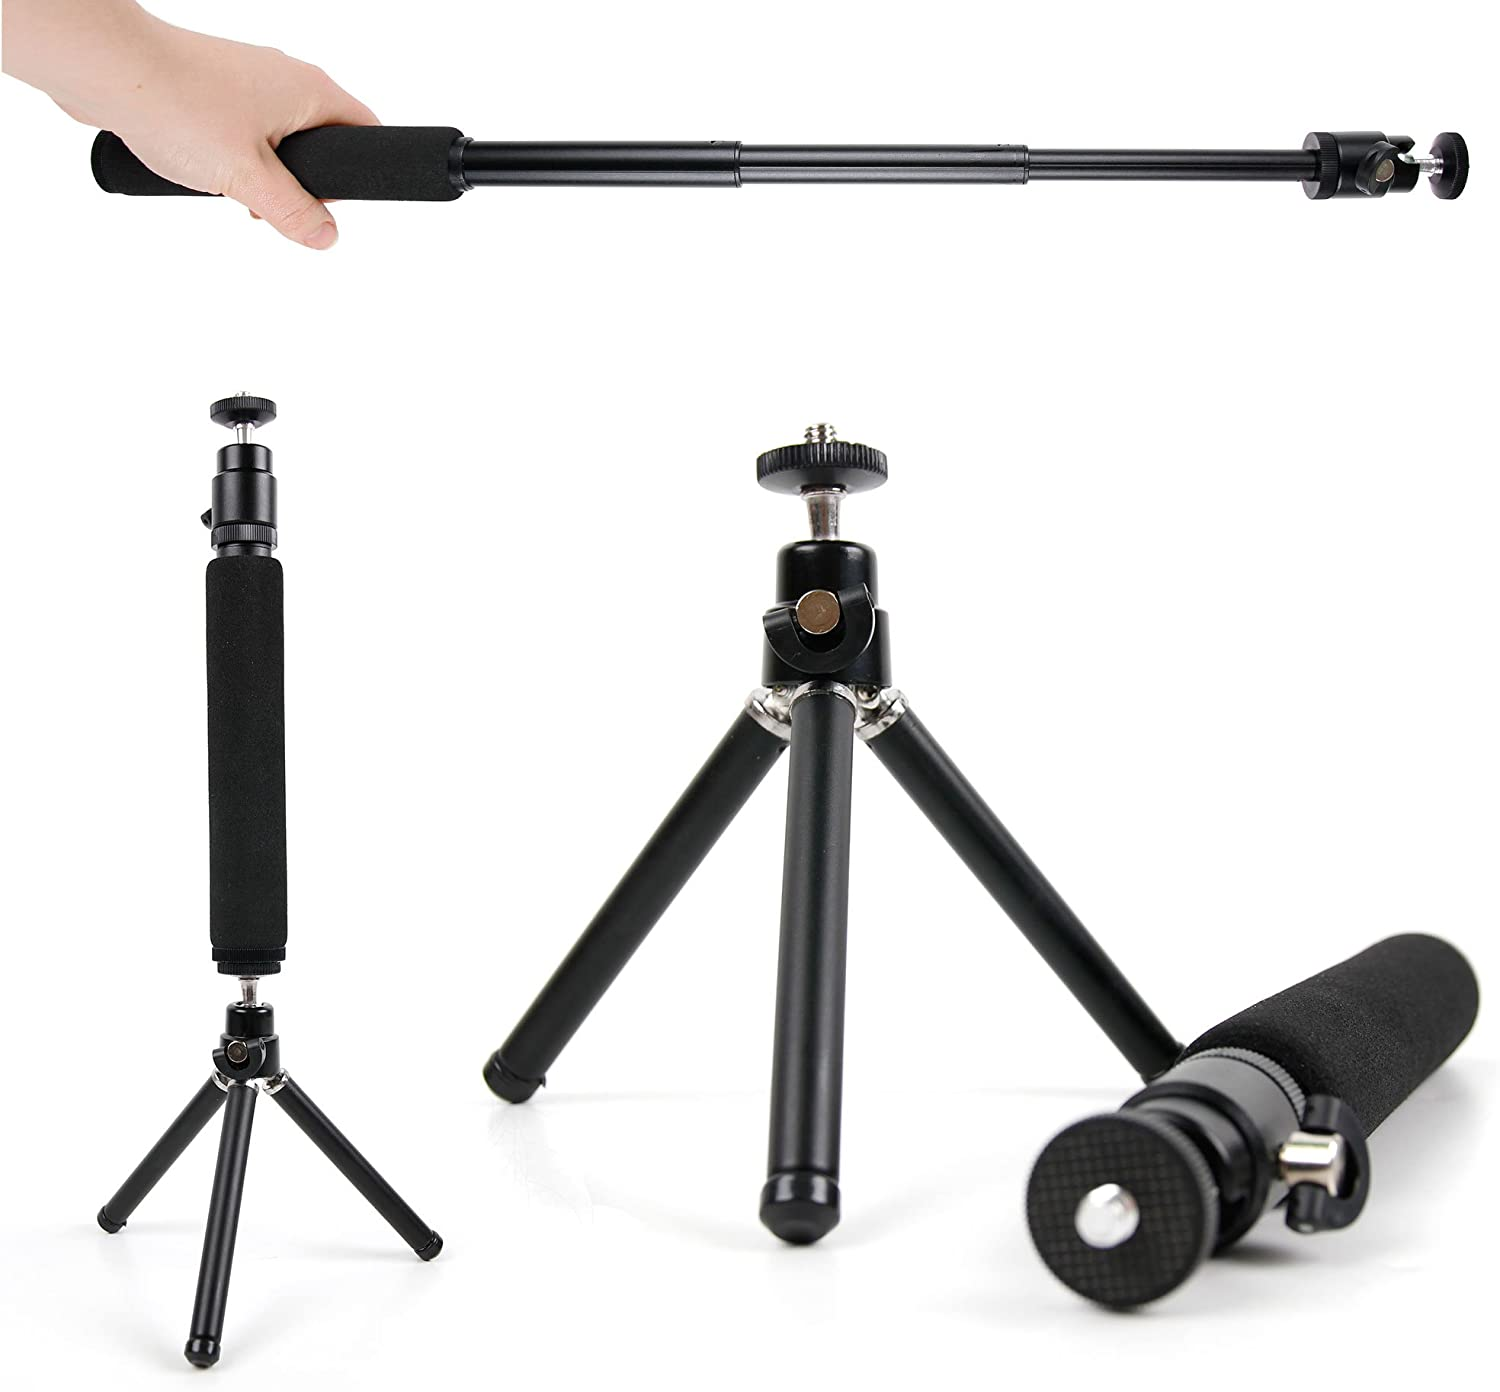 Lomo/'Instant Wide Camera Compatible with The Lomography Lomo Diana Mini DURAGADGET Lightweight 2-in-1 Tripod//Monopod